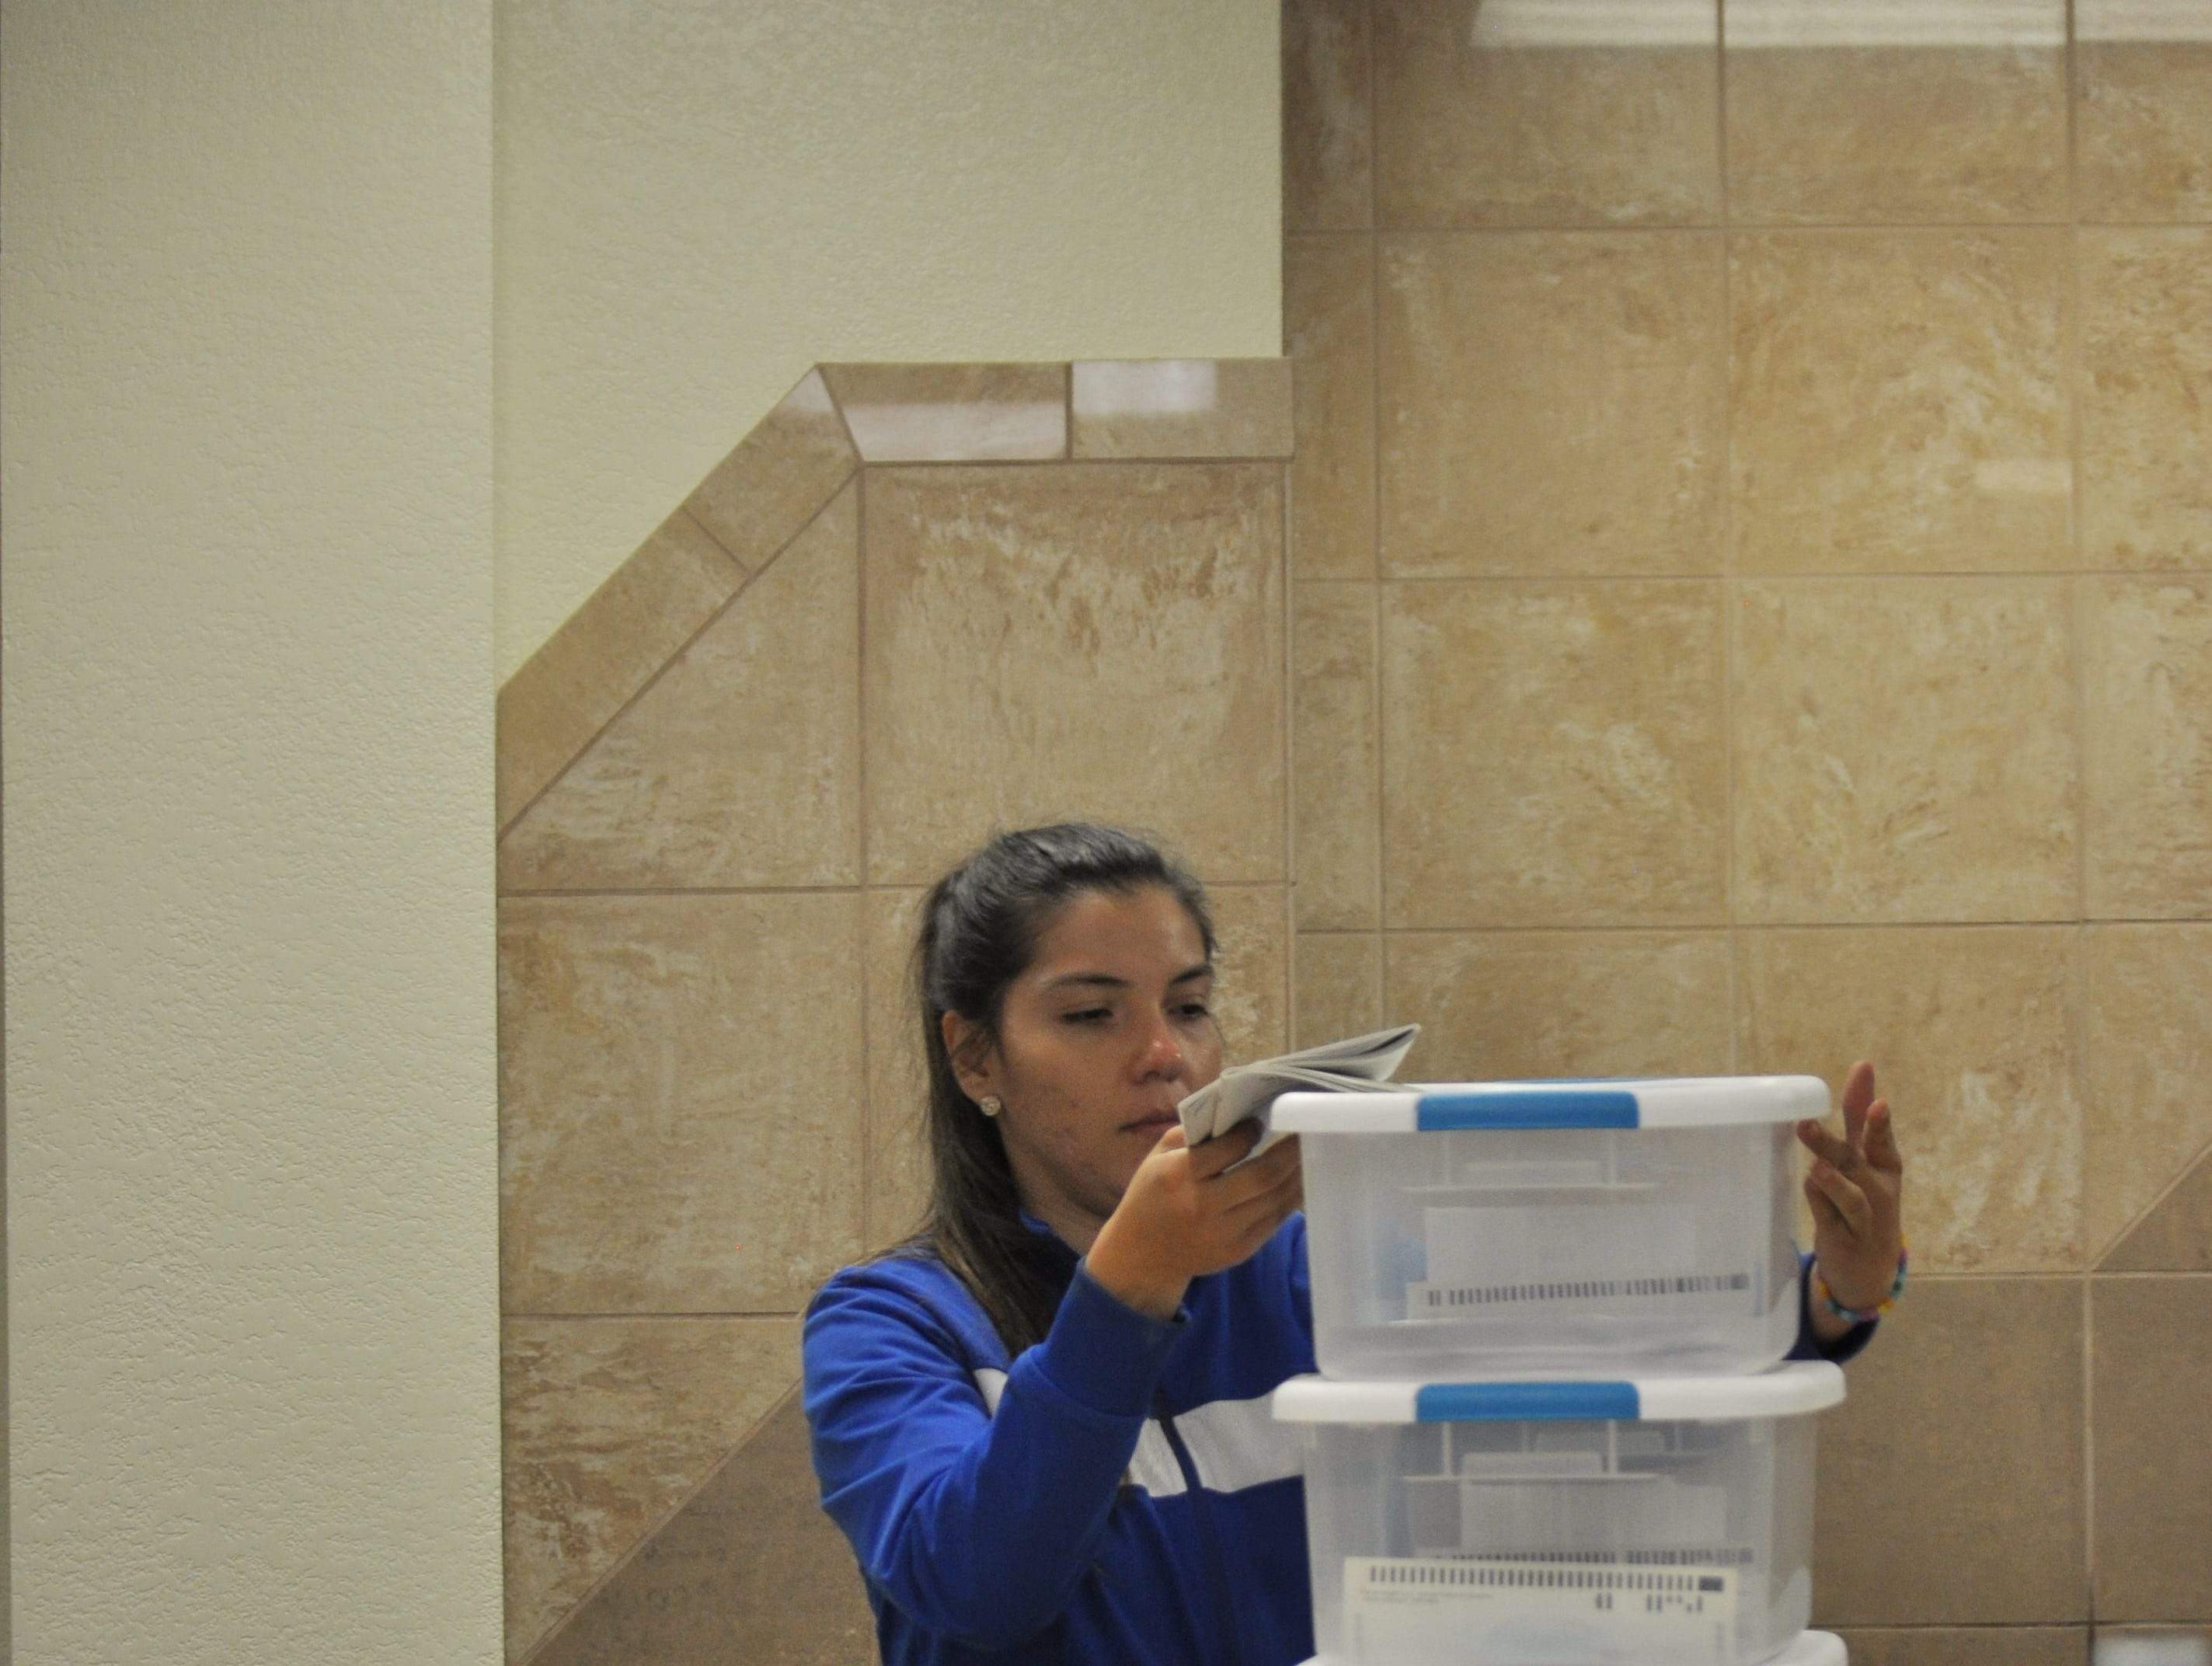 A poll worker delivers ballots to the Eddy County Bureau of Elections Oct. 6 following the close of polling locations in the general election.